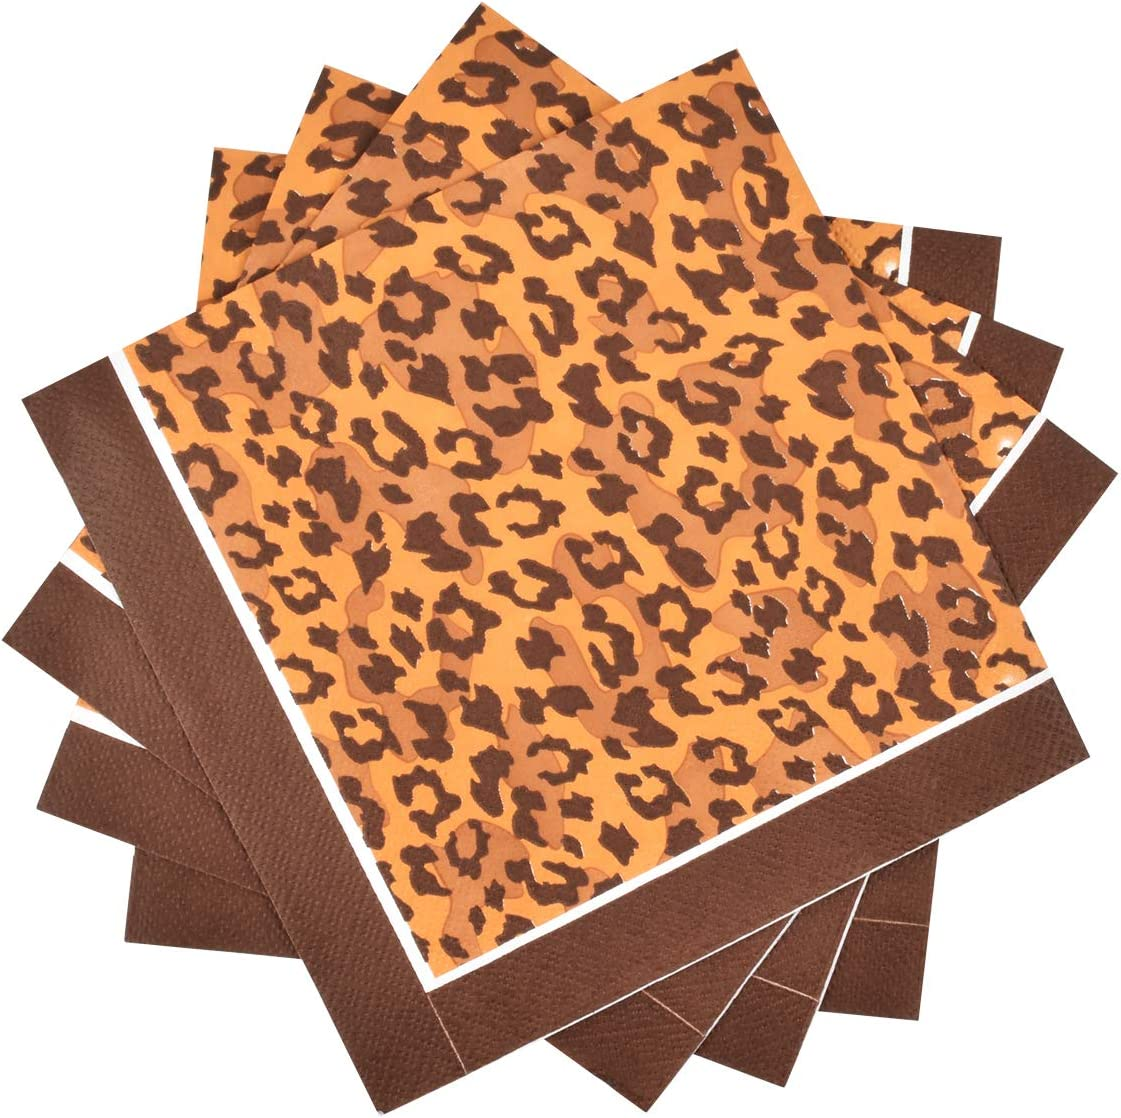 Gatherfun Disposable Paper Napkins 3-ply Leopard Pattern Beverage Napkins for Animal Safari Party, Dinner, Picnic, Birthday Party(6.5X6.5 in, 50-Pack)